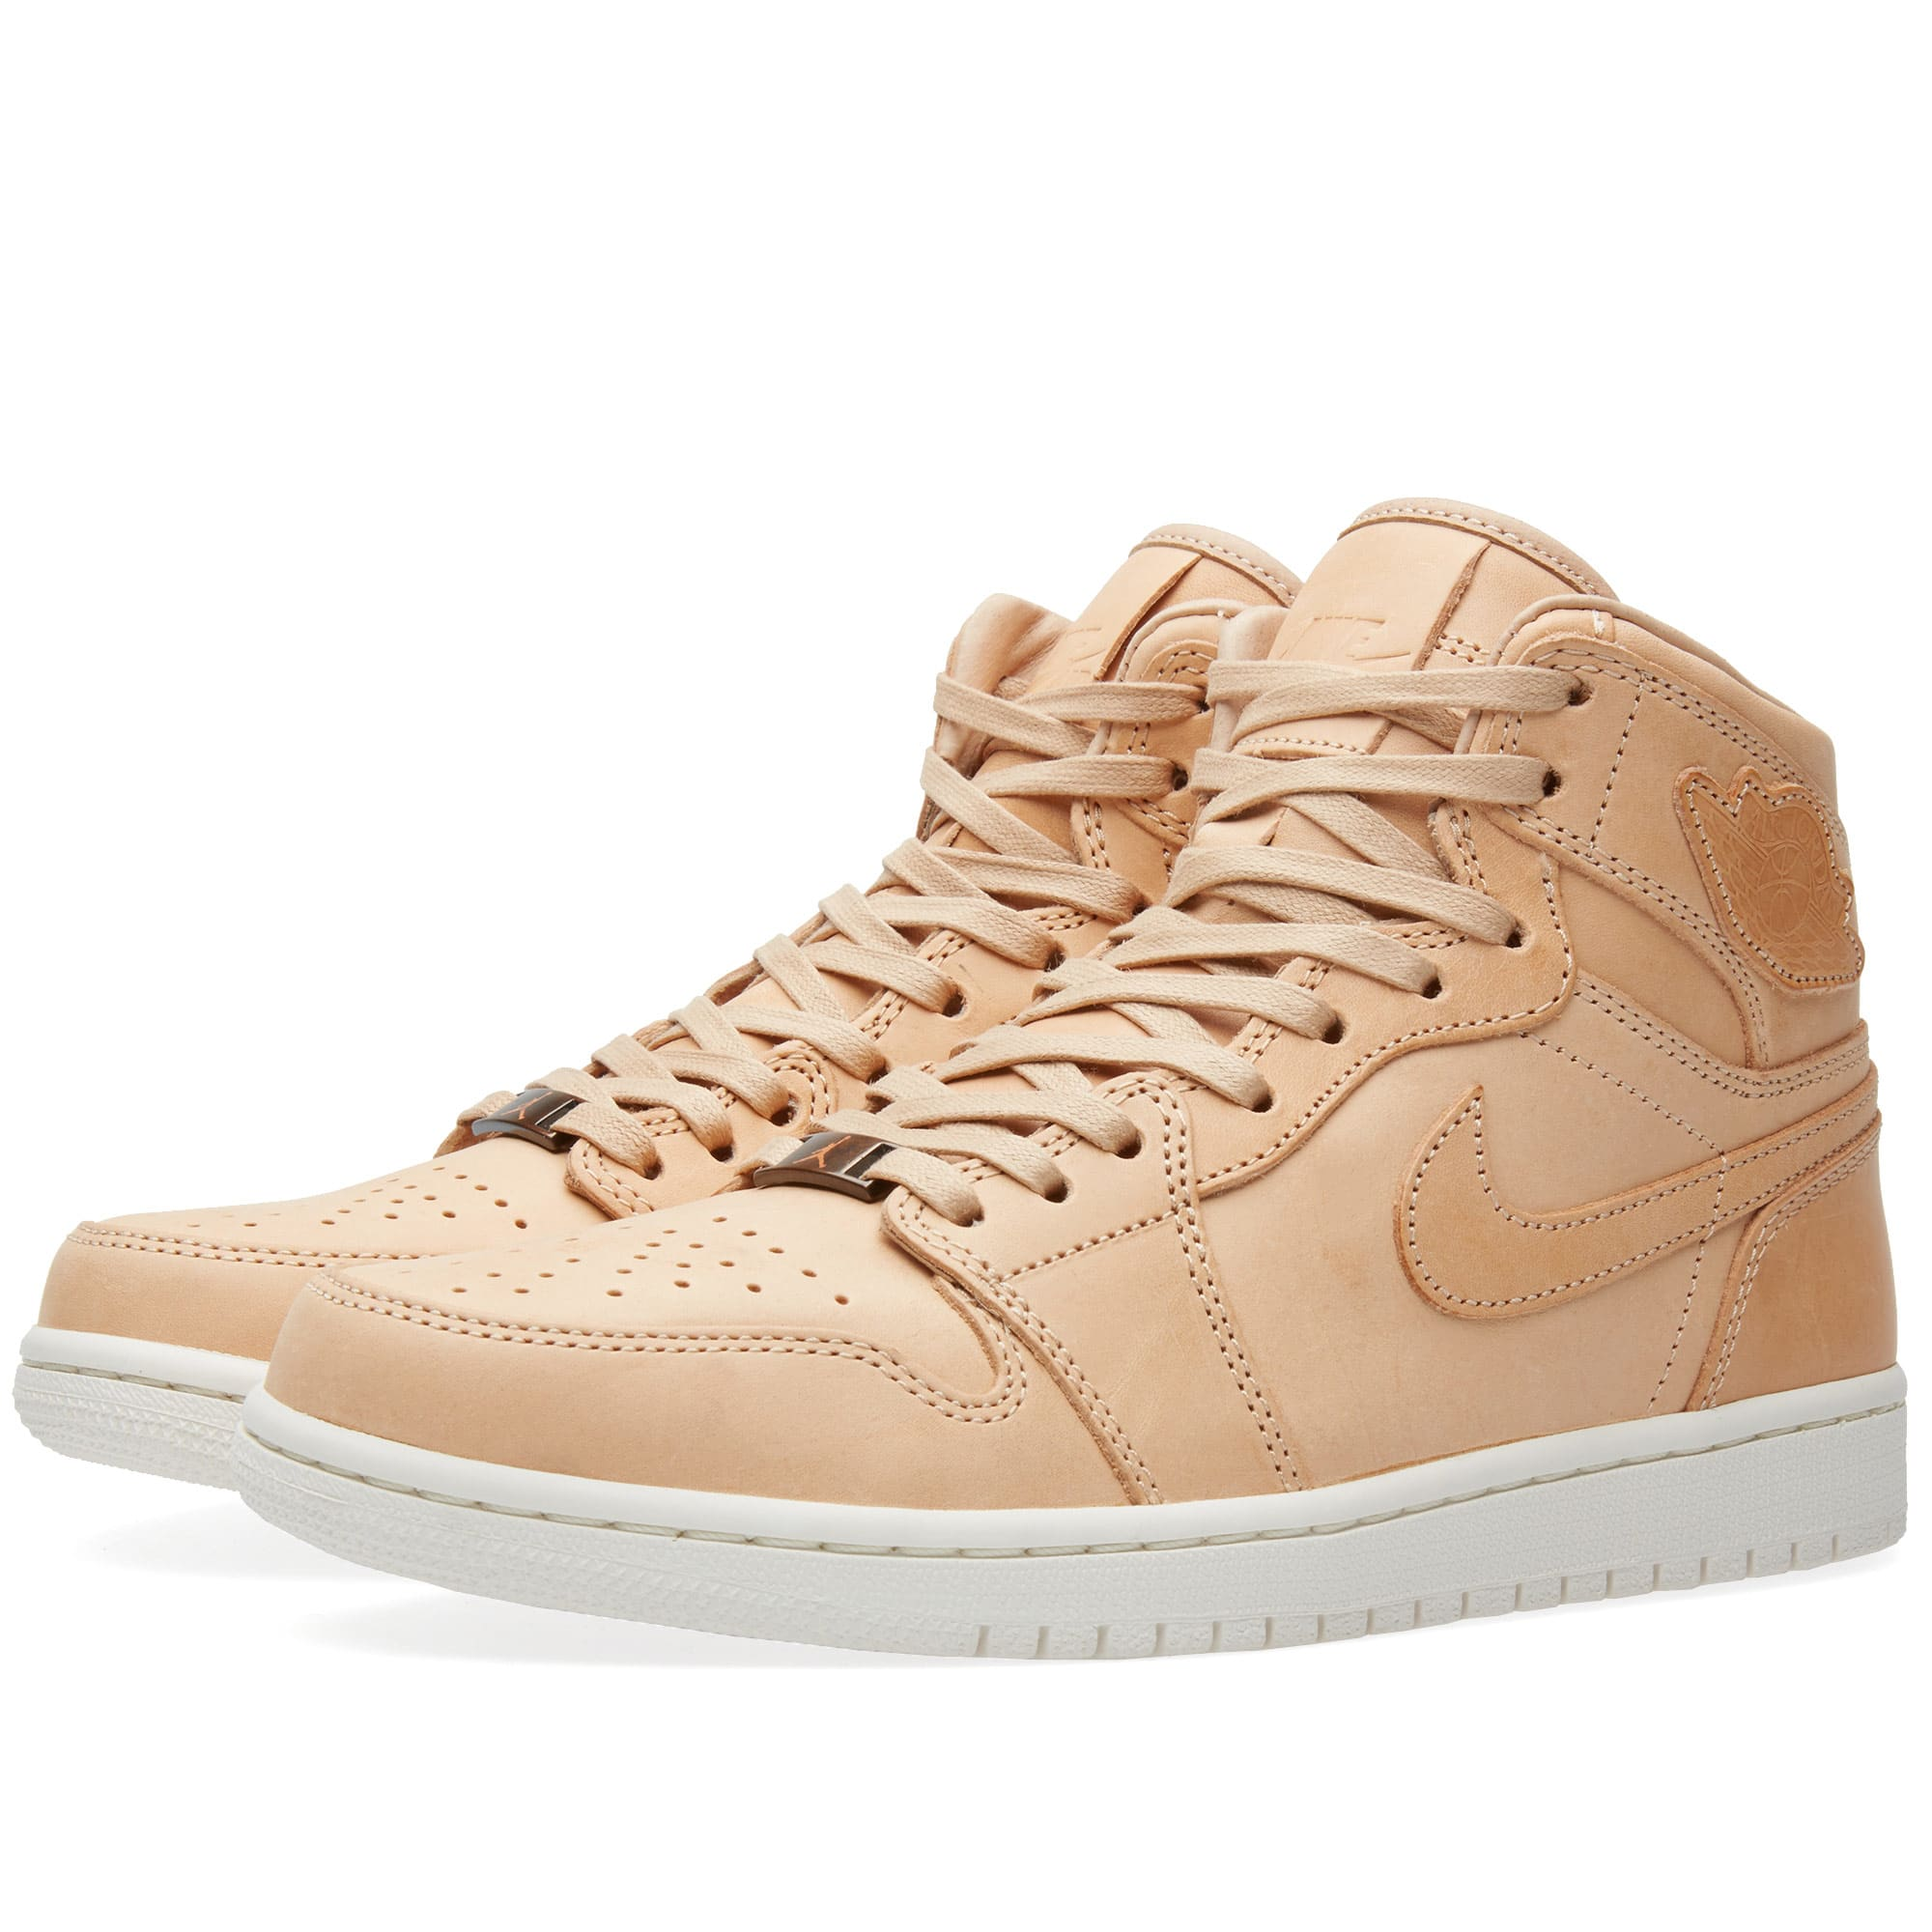 huge selection of 267c4 da7c8 Nike Air Jordan 1 Pinnacle Vachetta Tan   Sail   END.